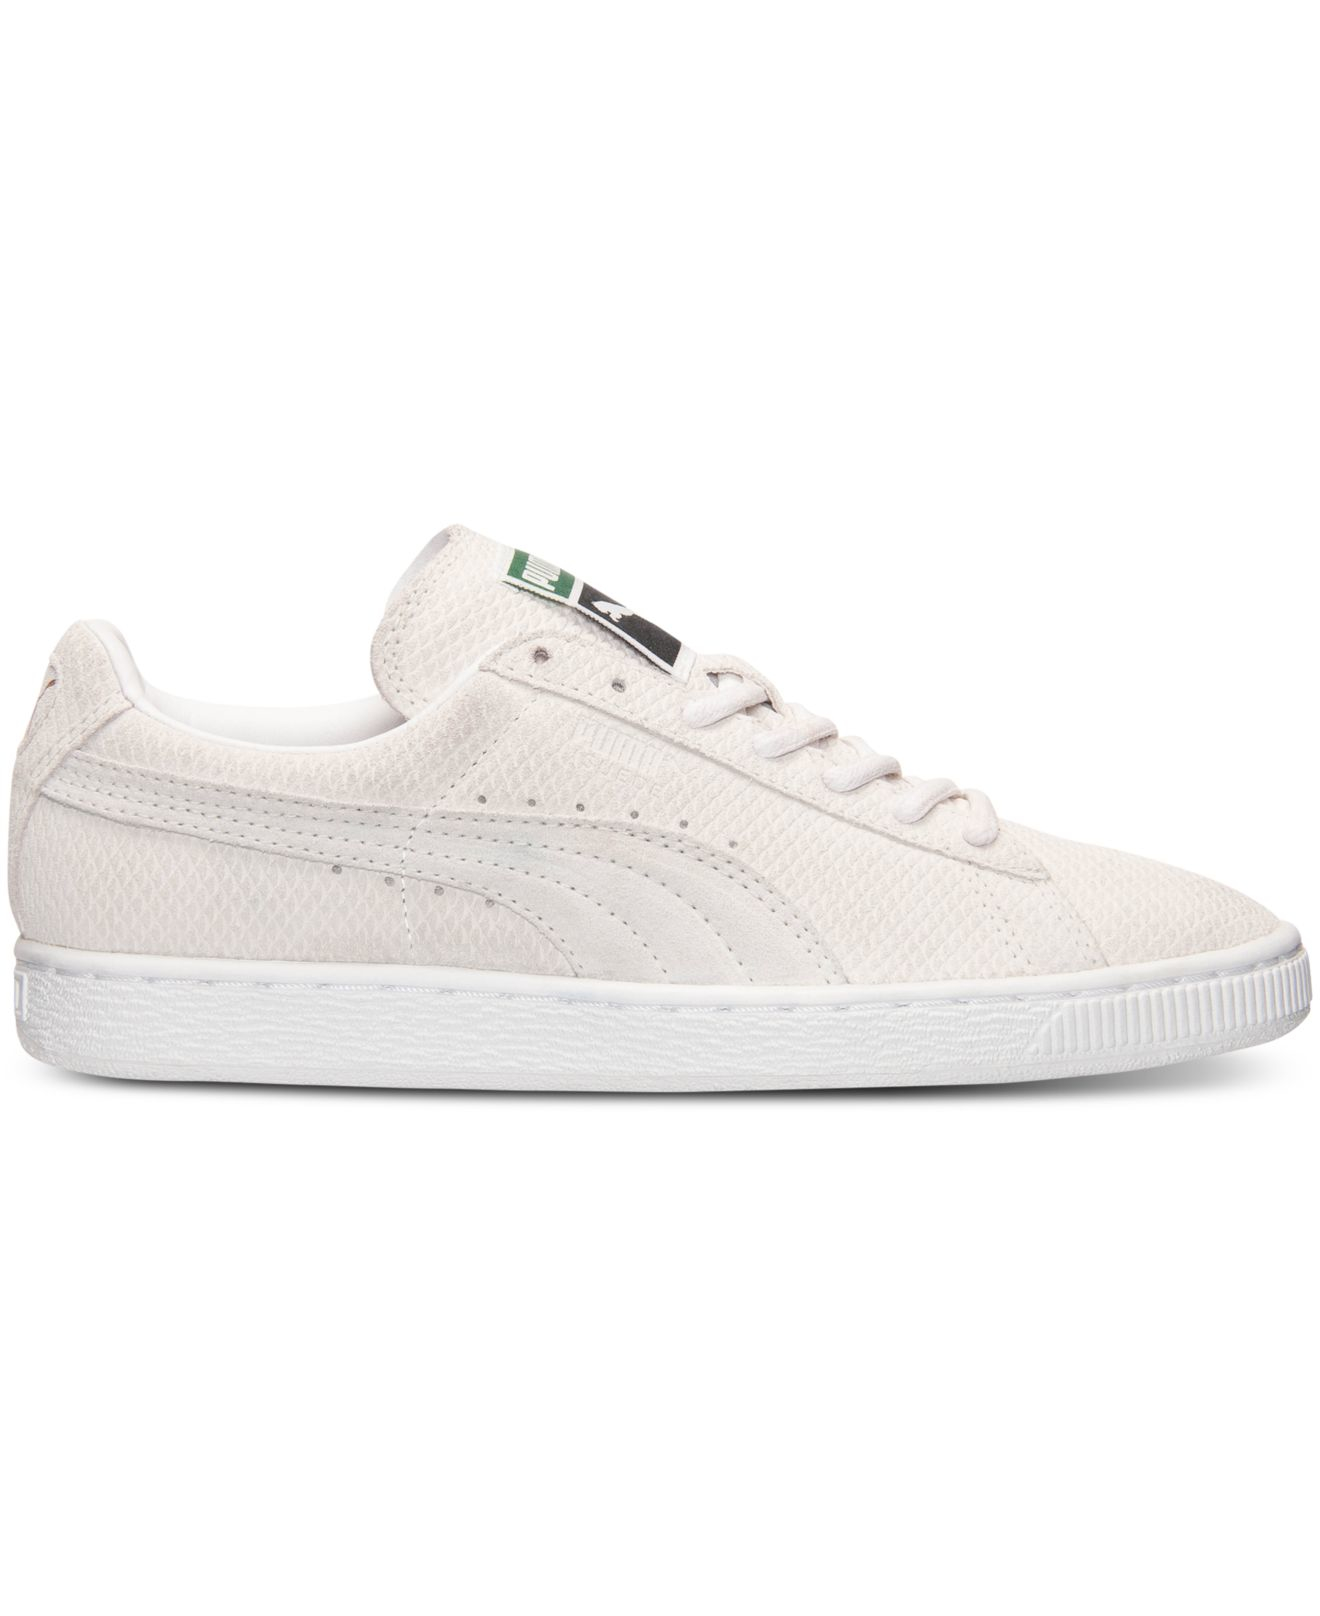 Puma Suede Womens White